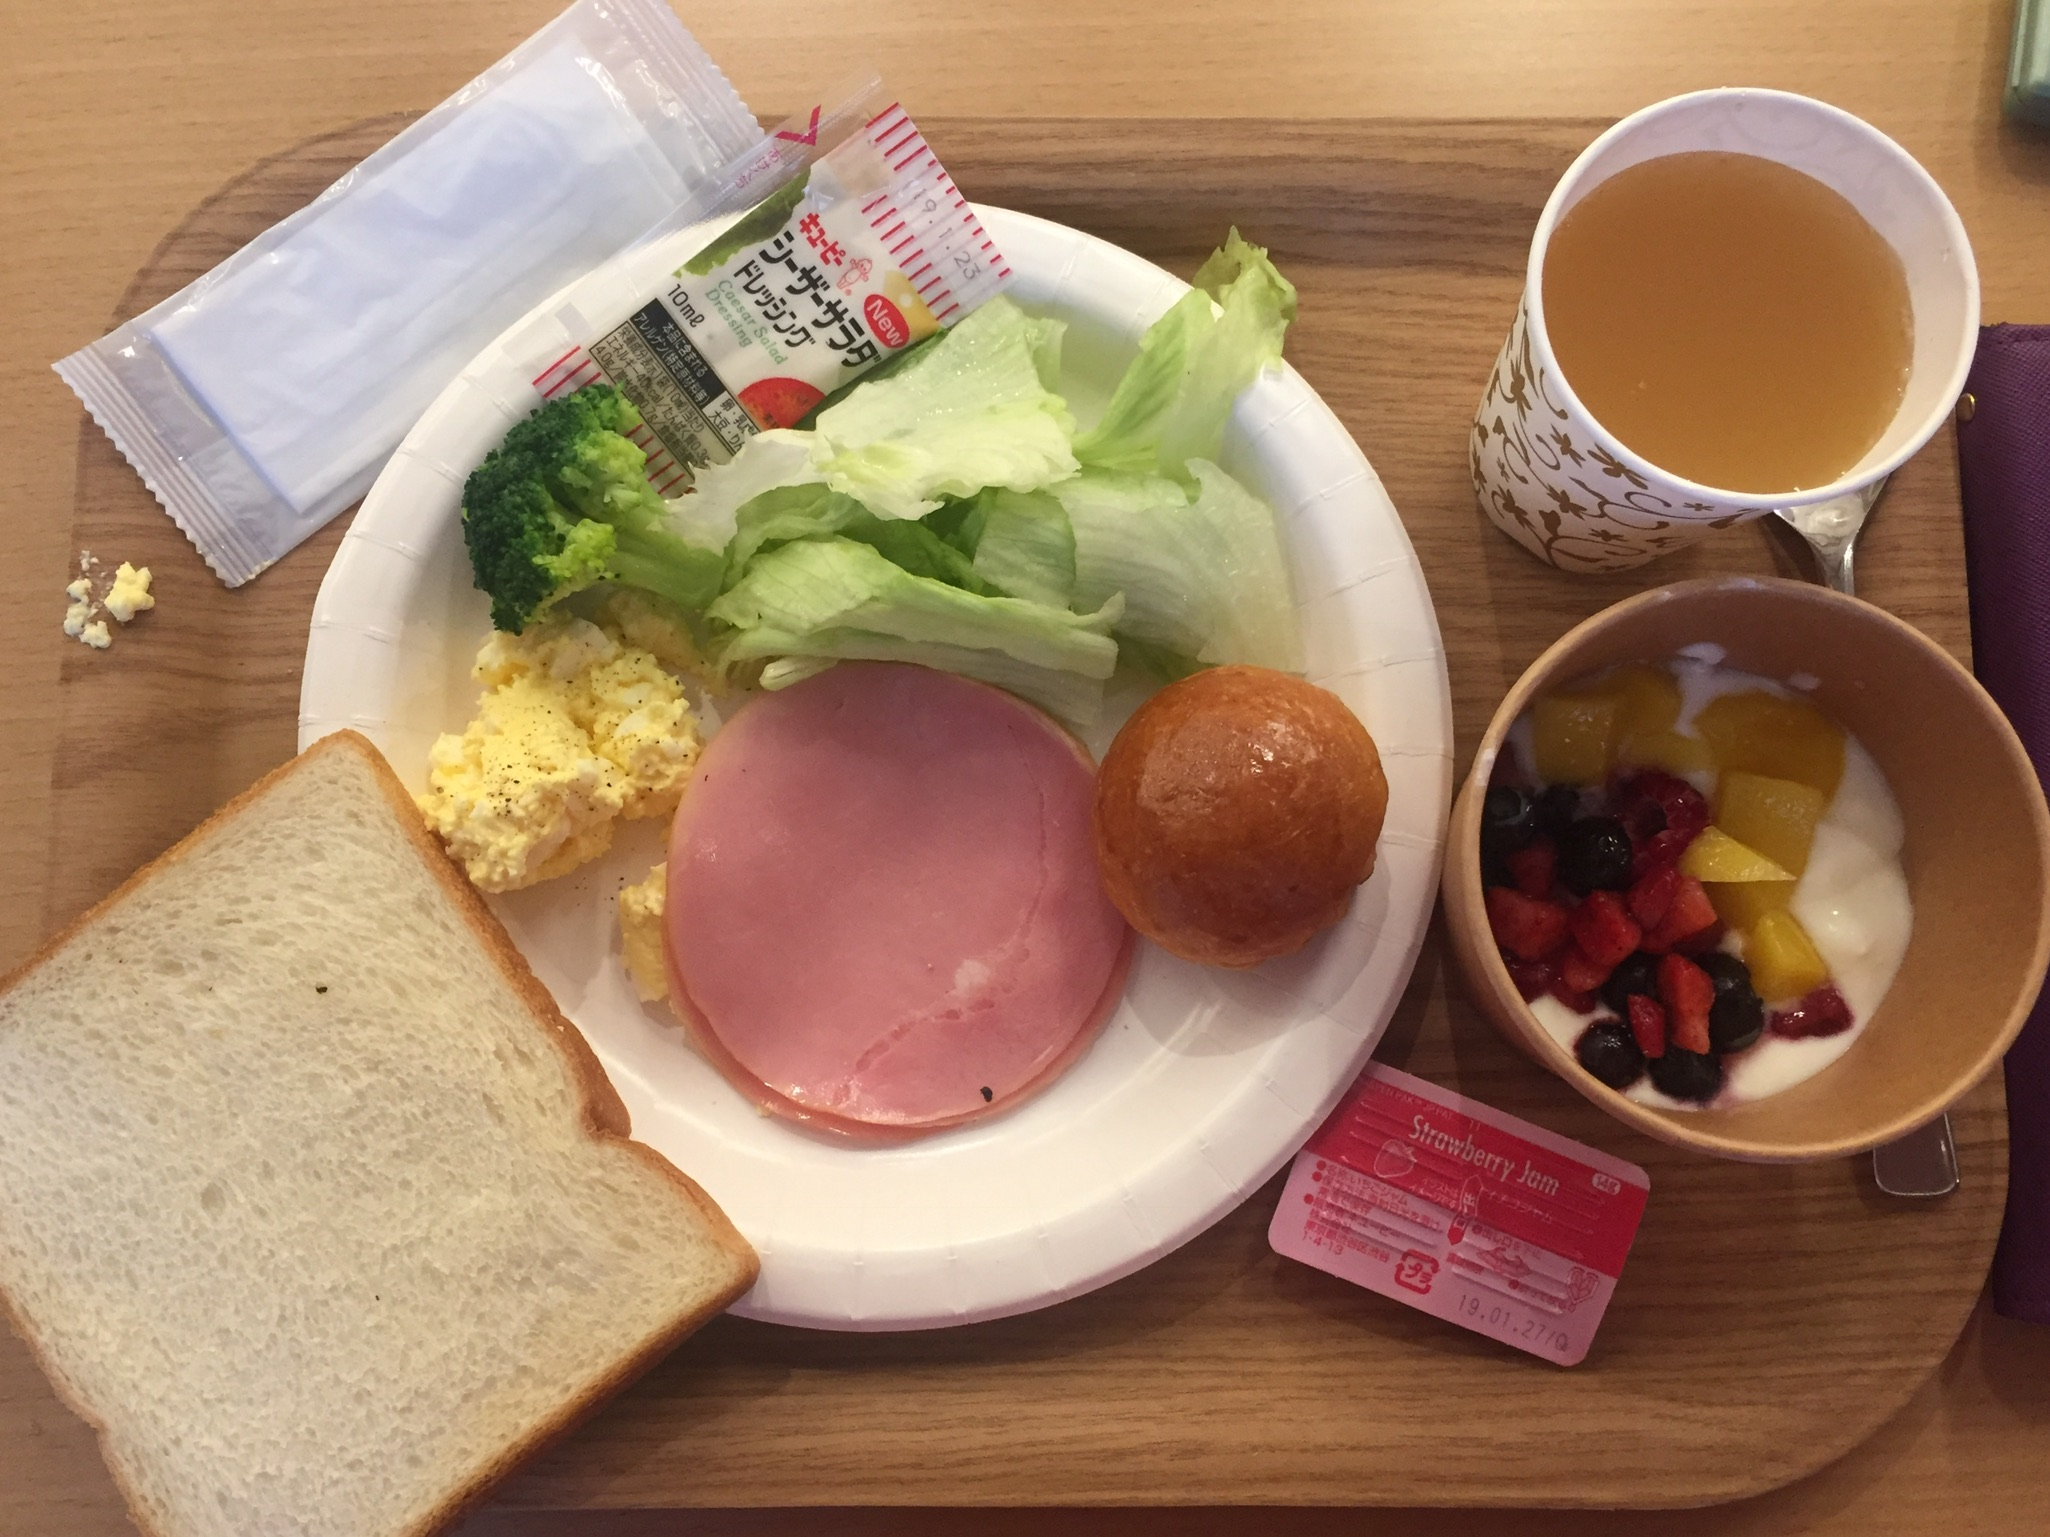 Western and Japanese style breakfast.